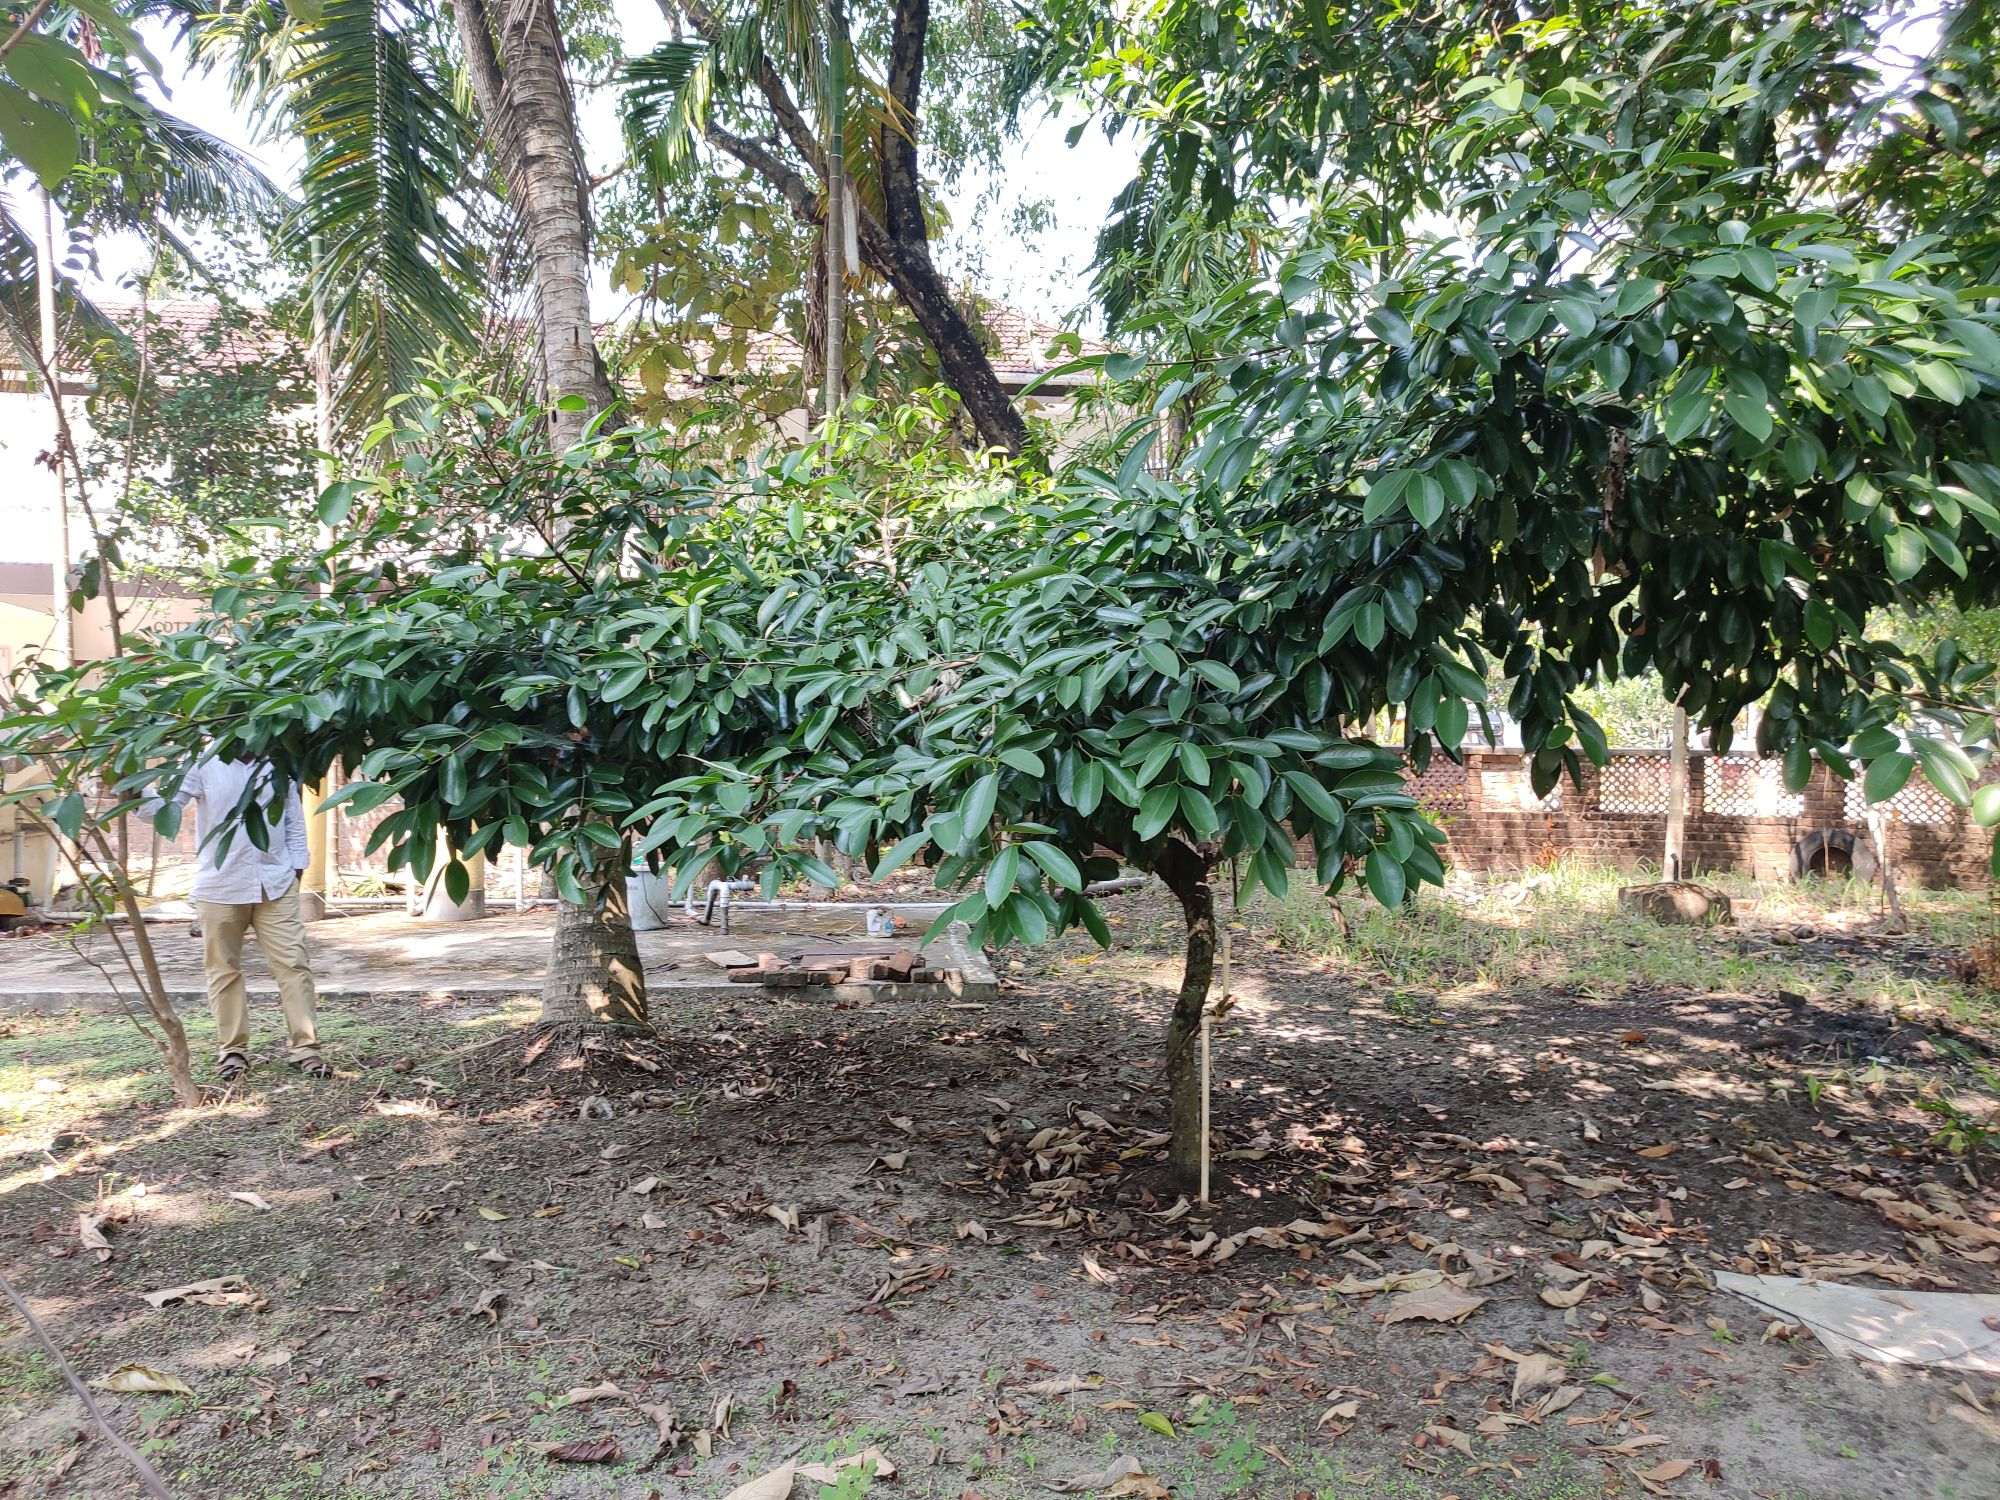 Tamarind trees are observed to have flourished in this region after the installation of the Rainwater Syringe unit. (Image by authors)